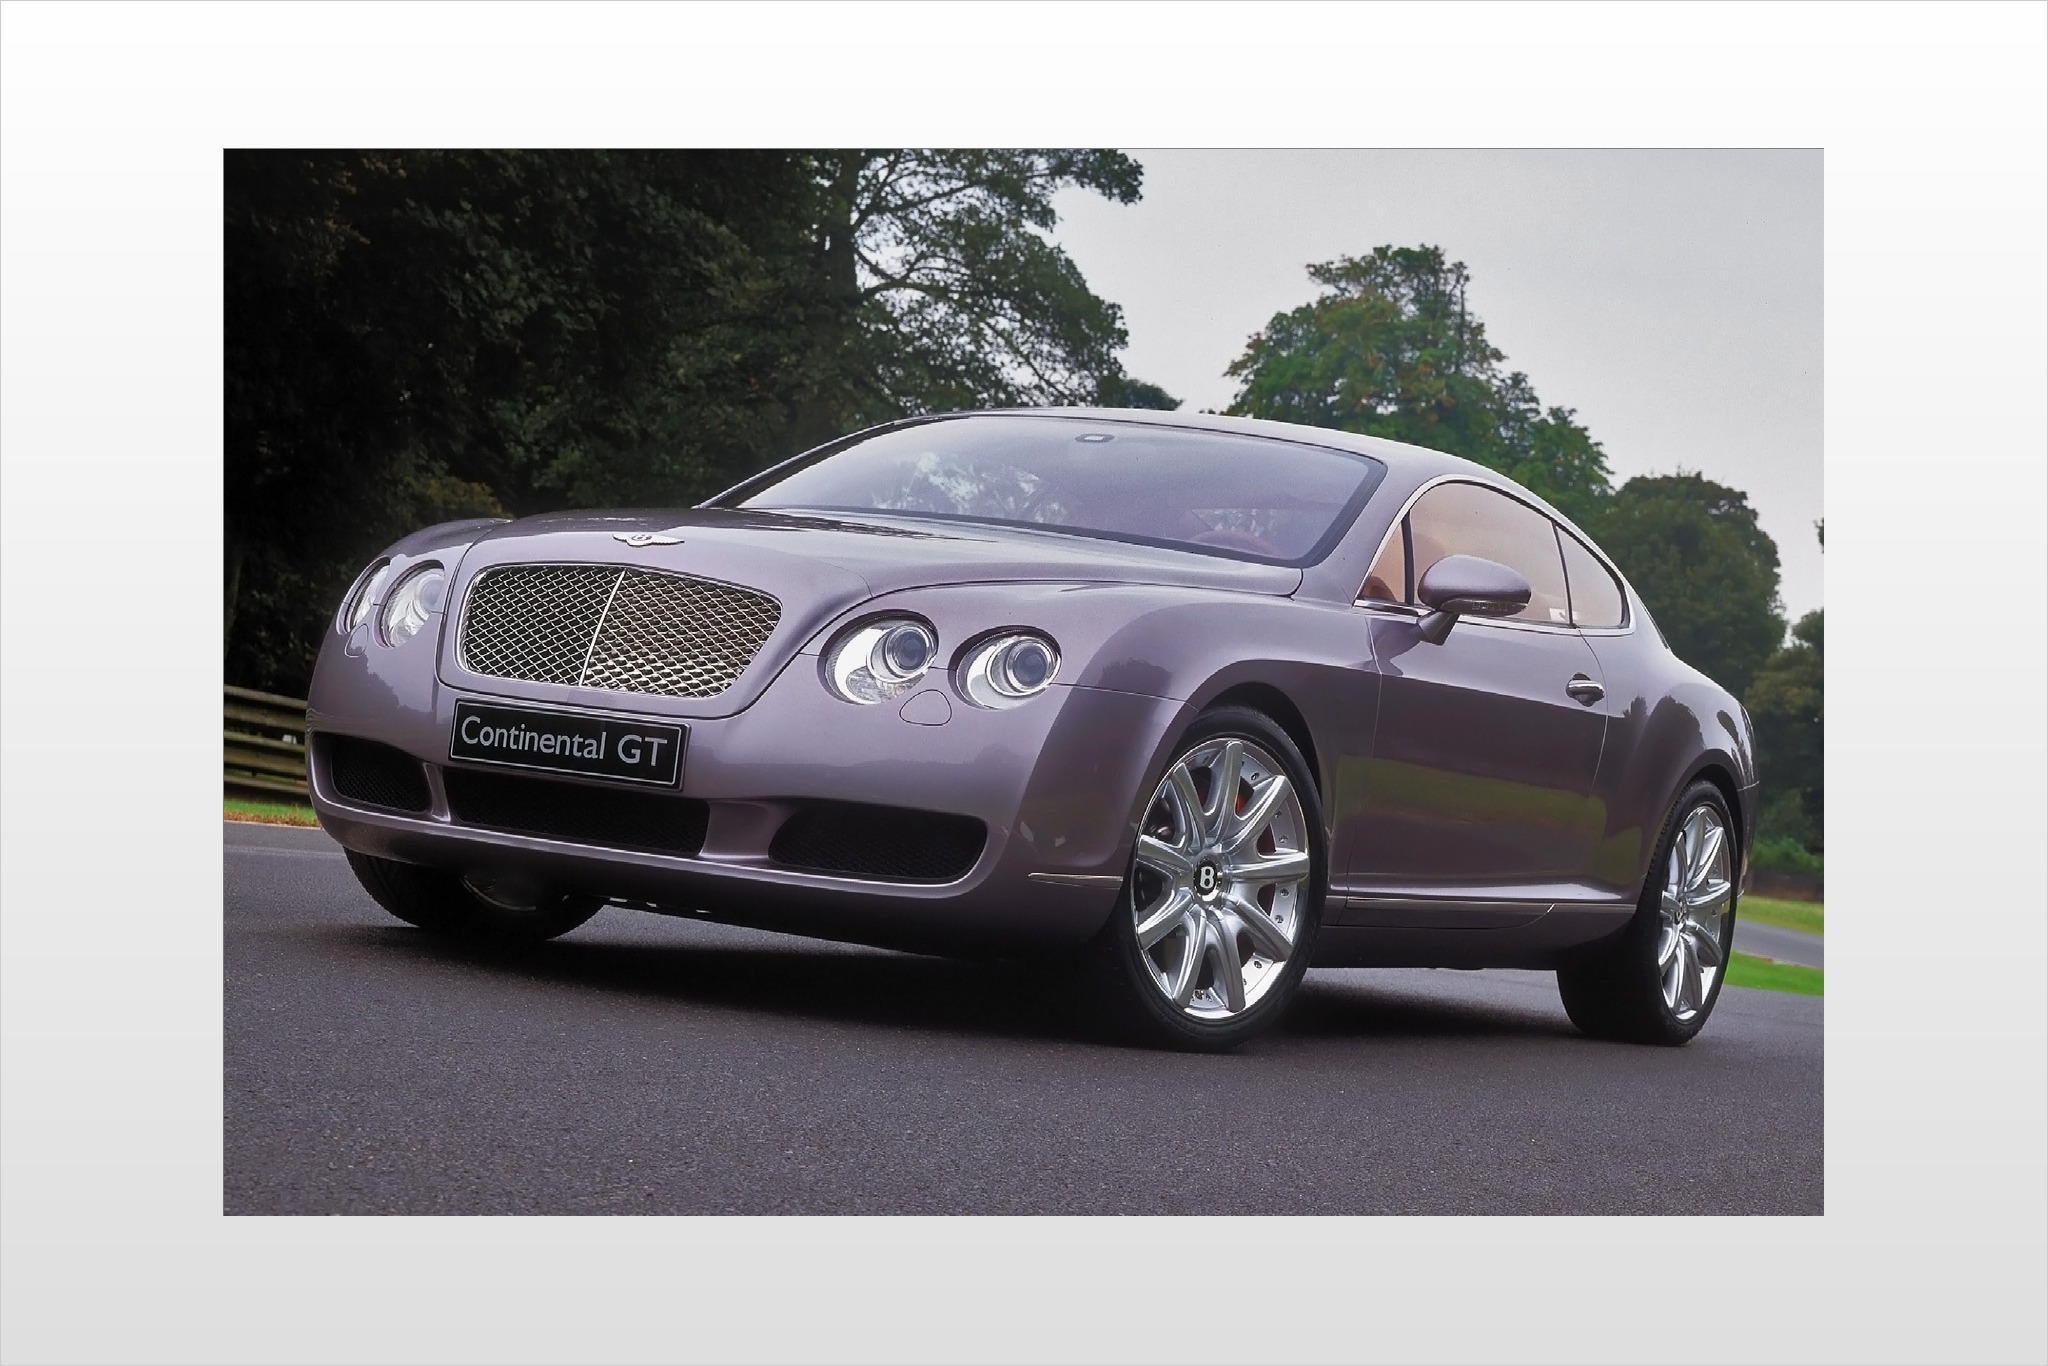 bentley 2006 bentley continental gt 2006 bentley continental gt image. Cars Review. Best American Auto & Cars Review